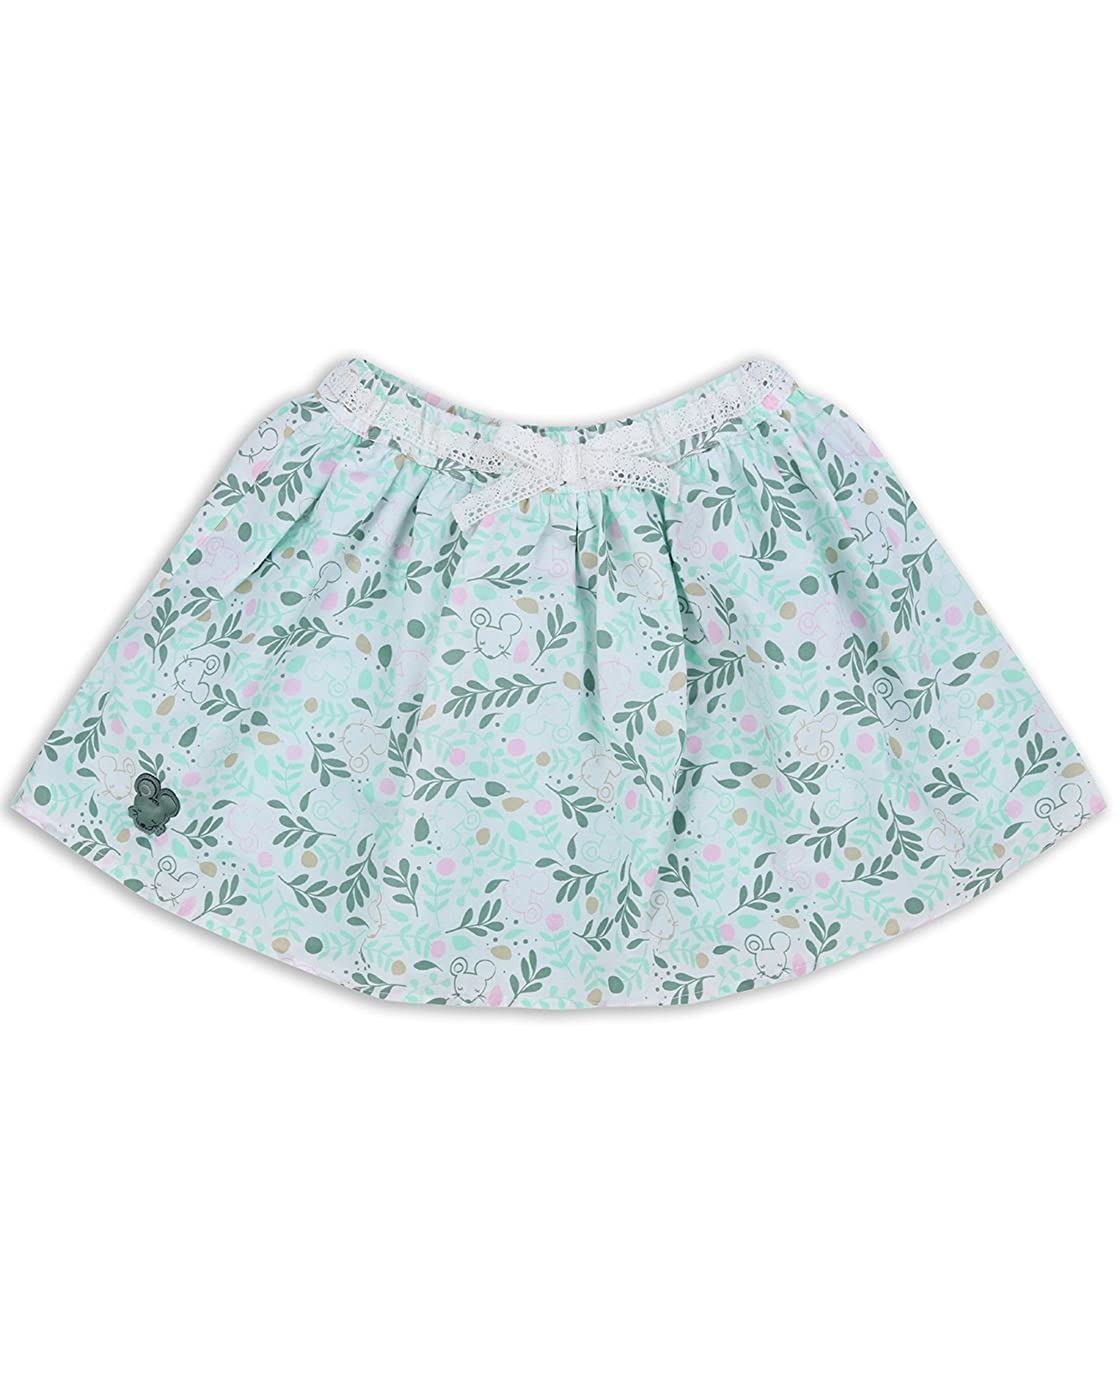 The Essential One - Baby Kids Girls - Leaves Skirt - Green - EOT344